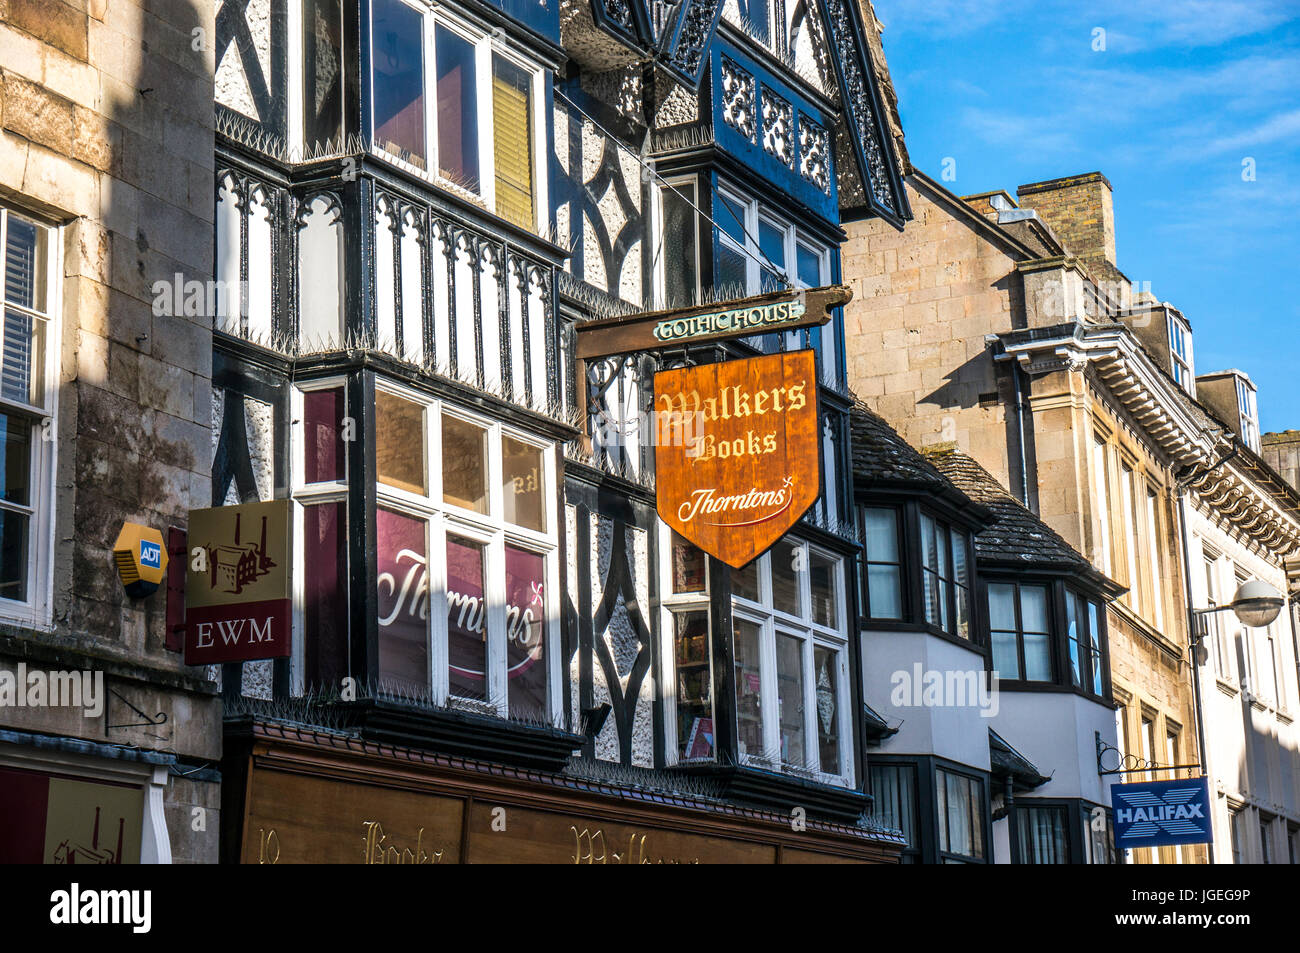 Sign for Walkers Books and Thorntons, outside period buildings in historic Stamford town, Lincolnshire, England, - Stock Image